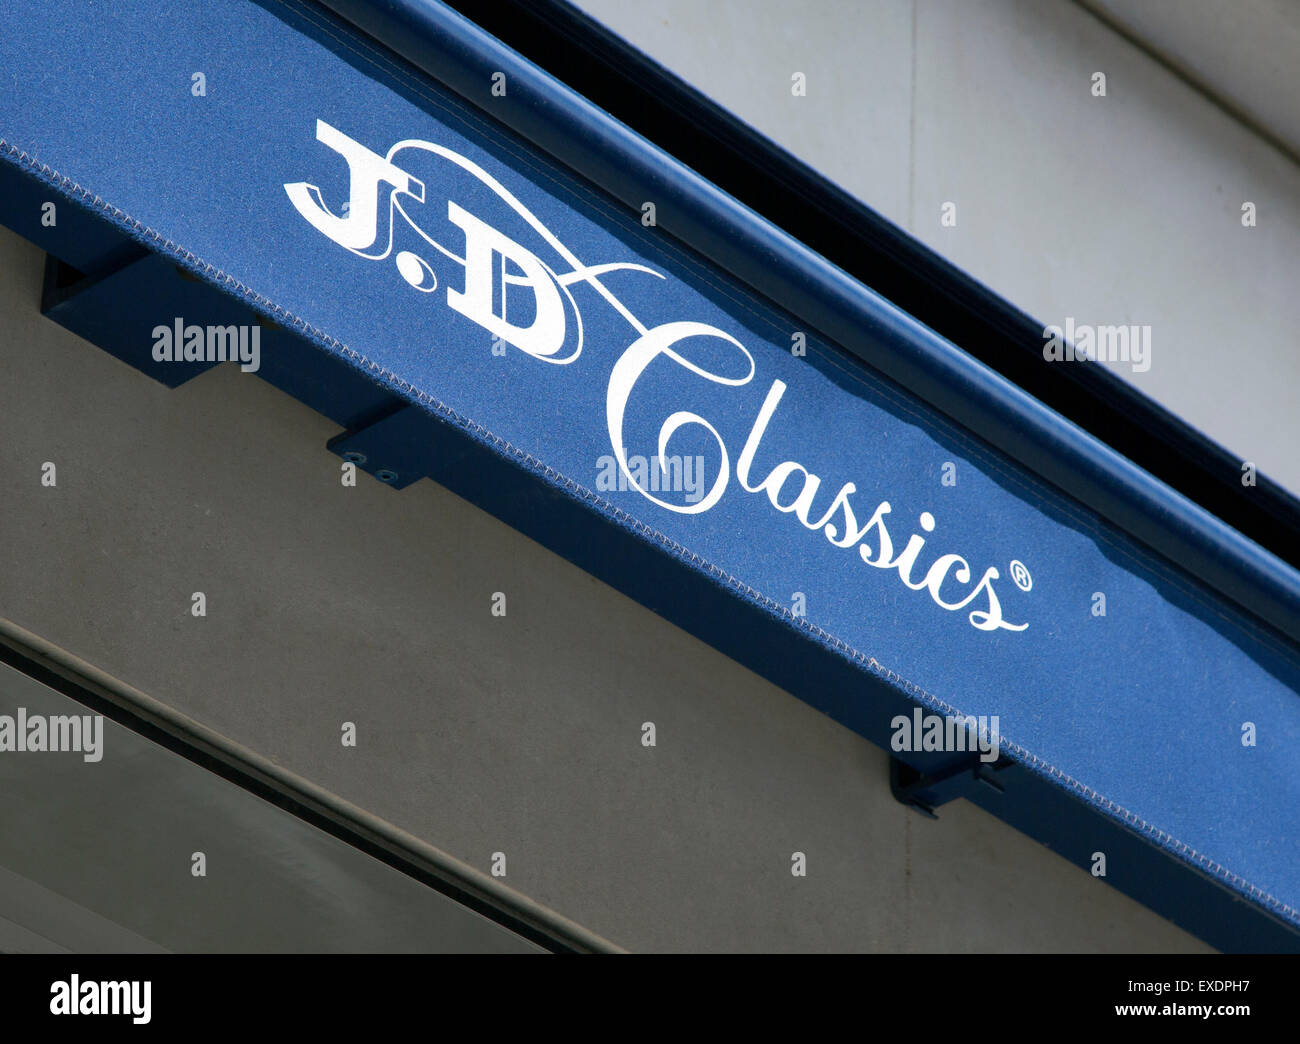 J D Classics classic car showrooms, Mayfair, London - Stock Image